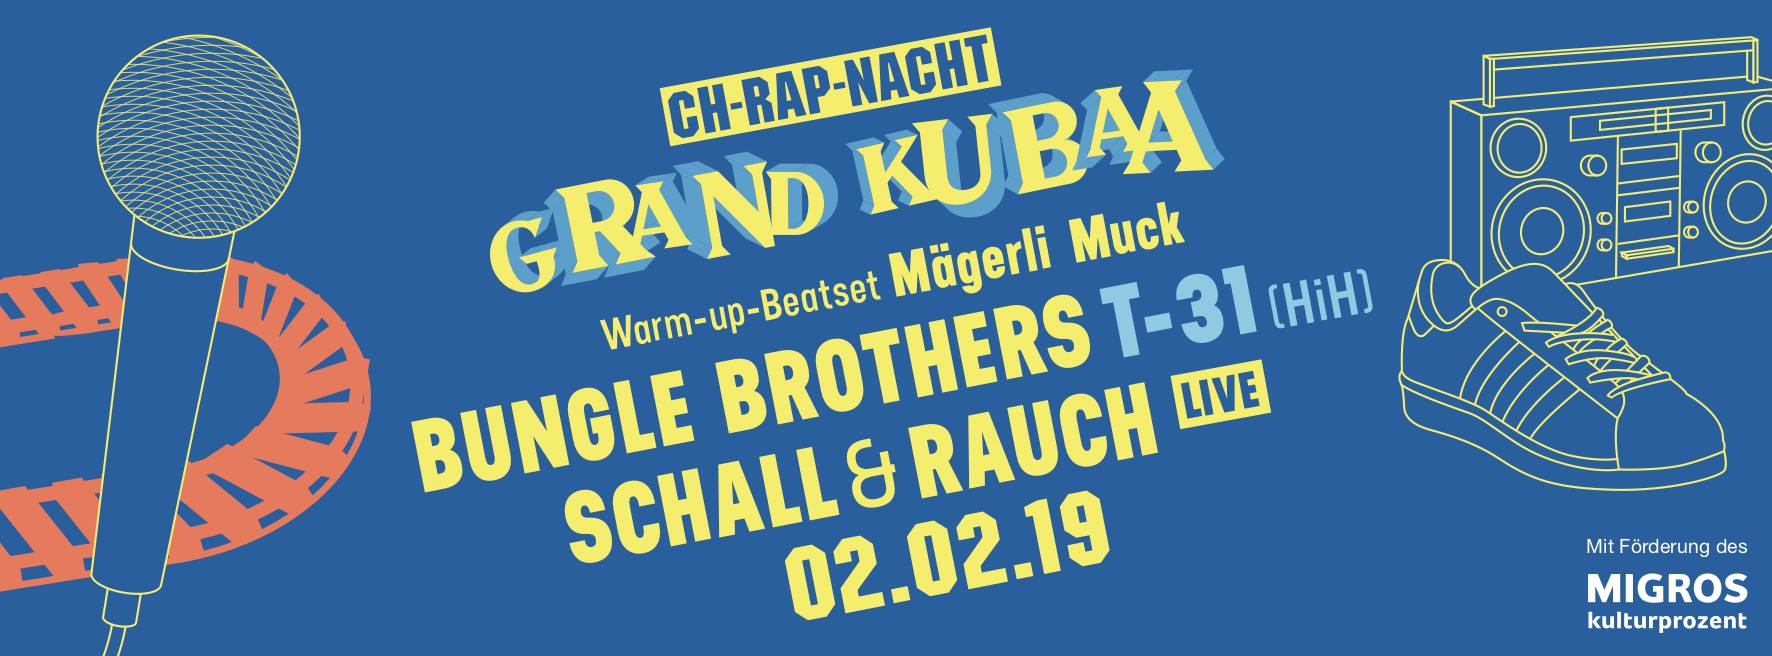 grand_kubaa_8_feat_bungle_brothers_and_t-31_hih_flyer_2019